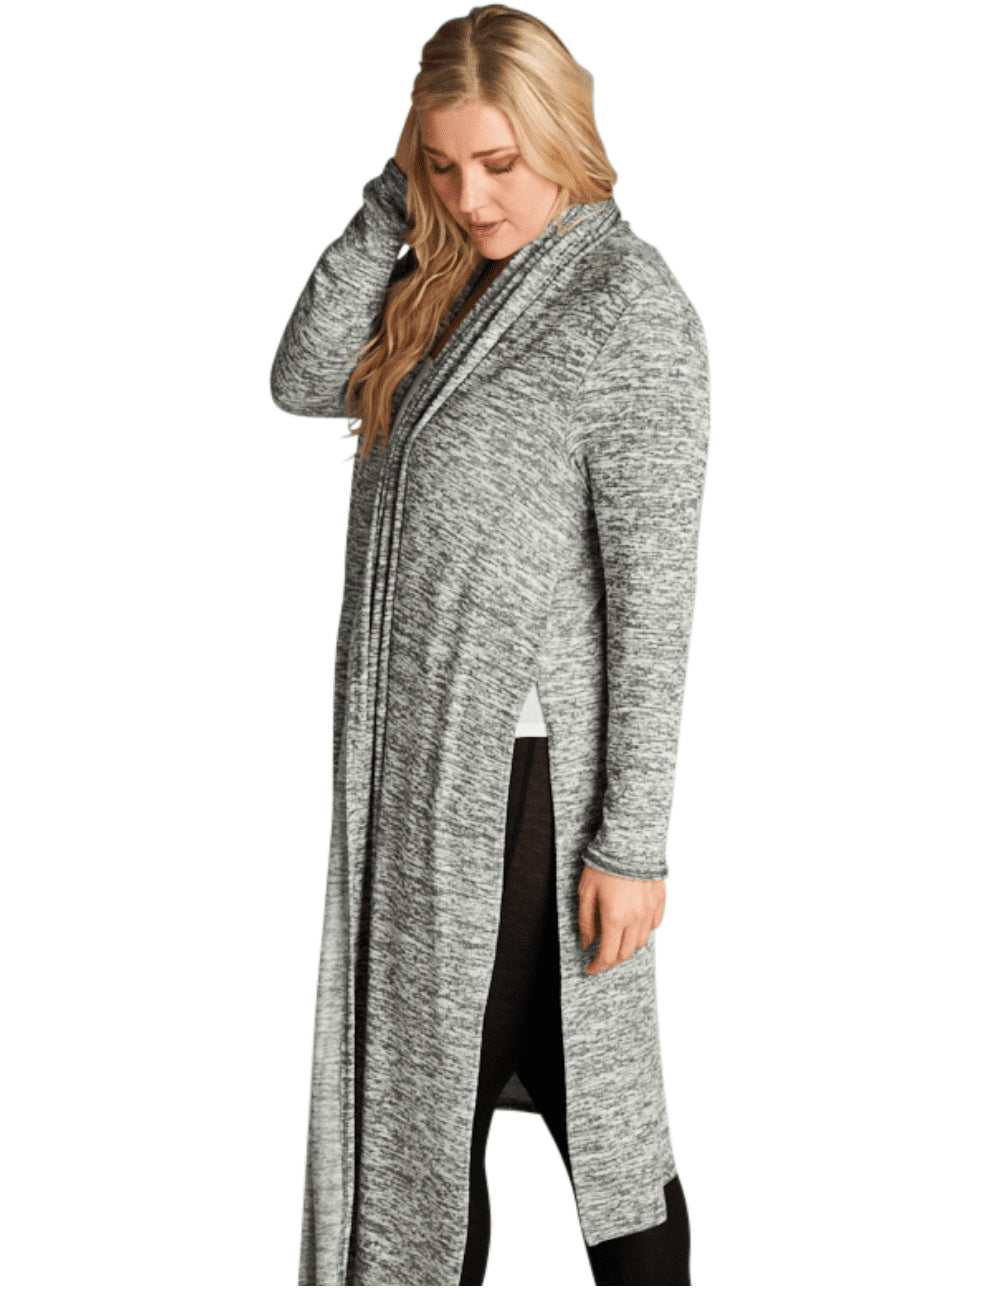 plus size Jacket XL / AUS 16 - 18 / Grey Hailey Cardigan - Grey